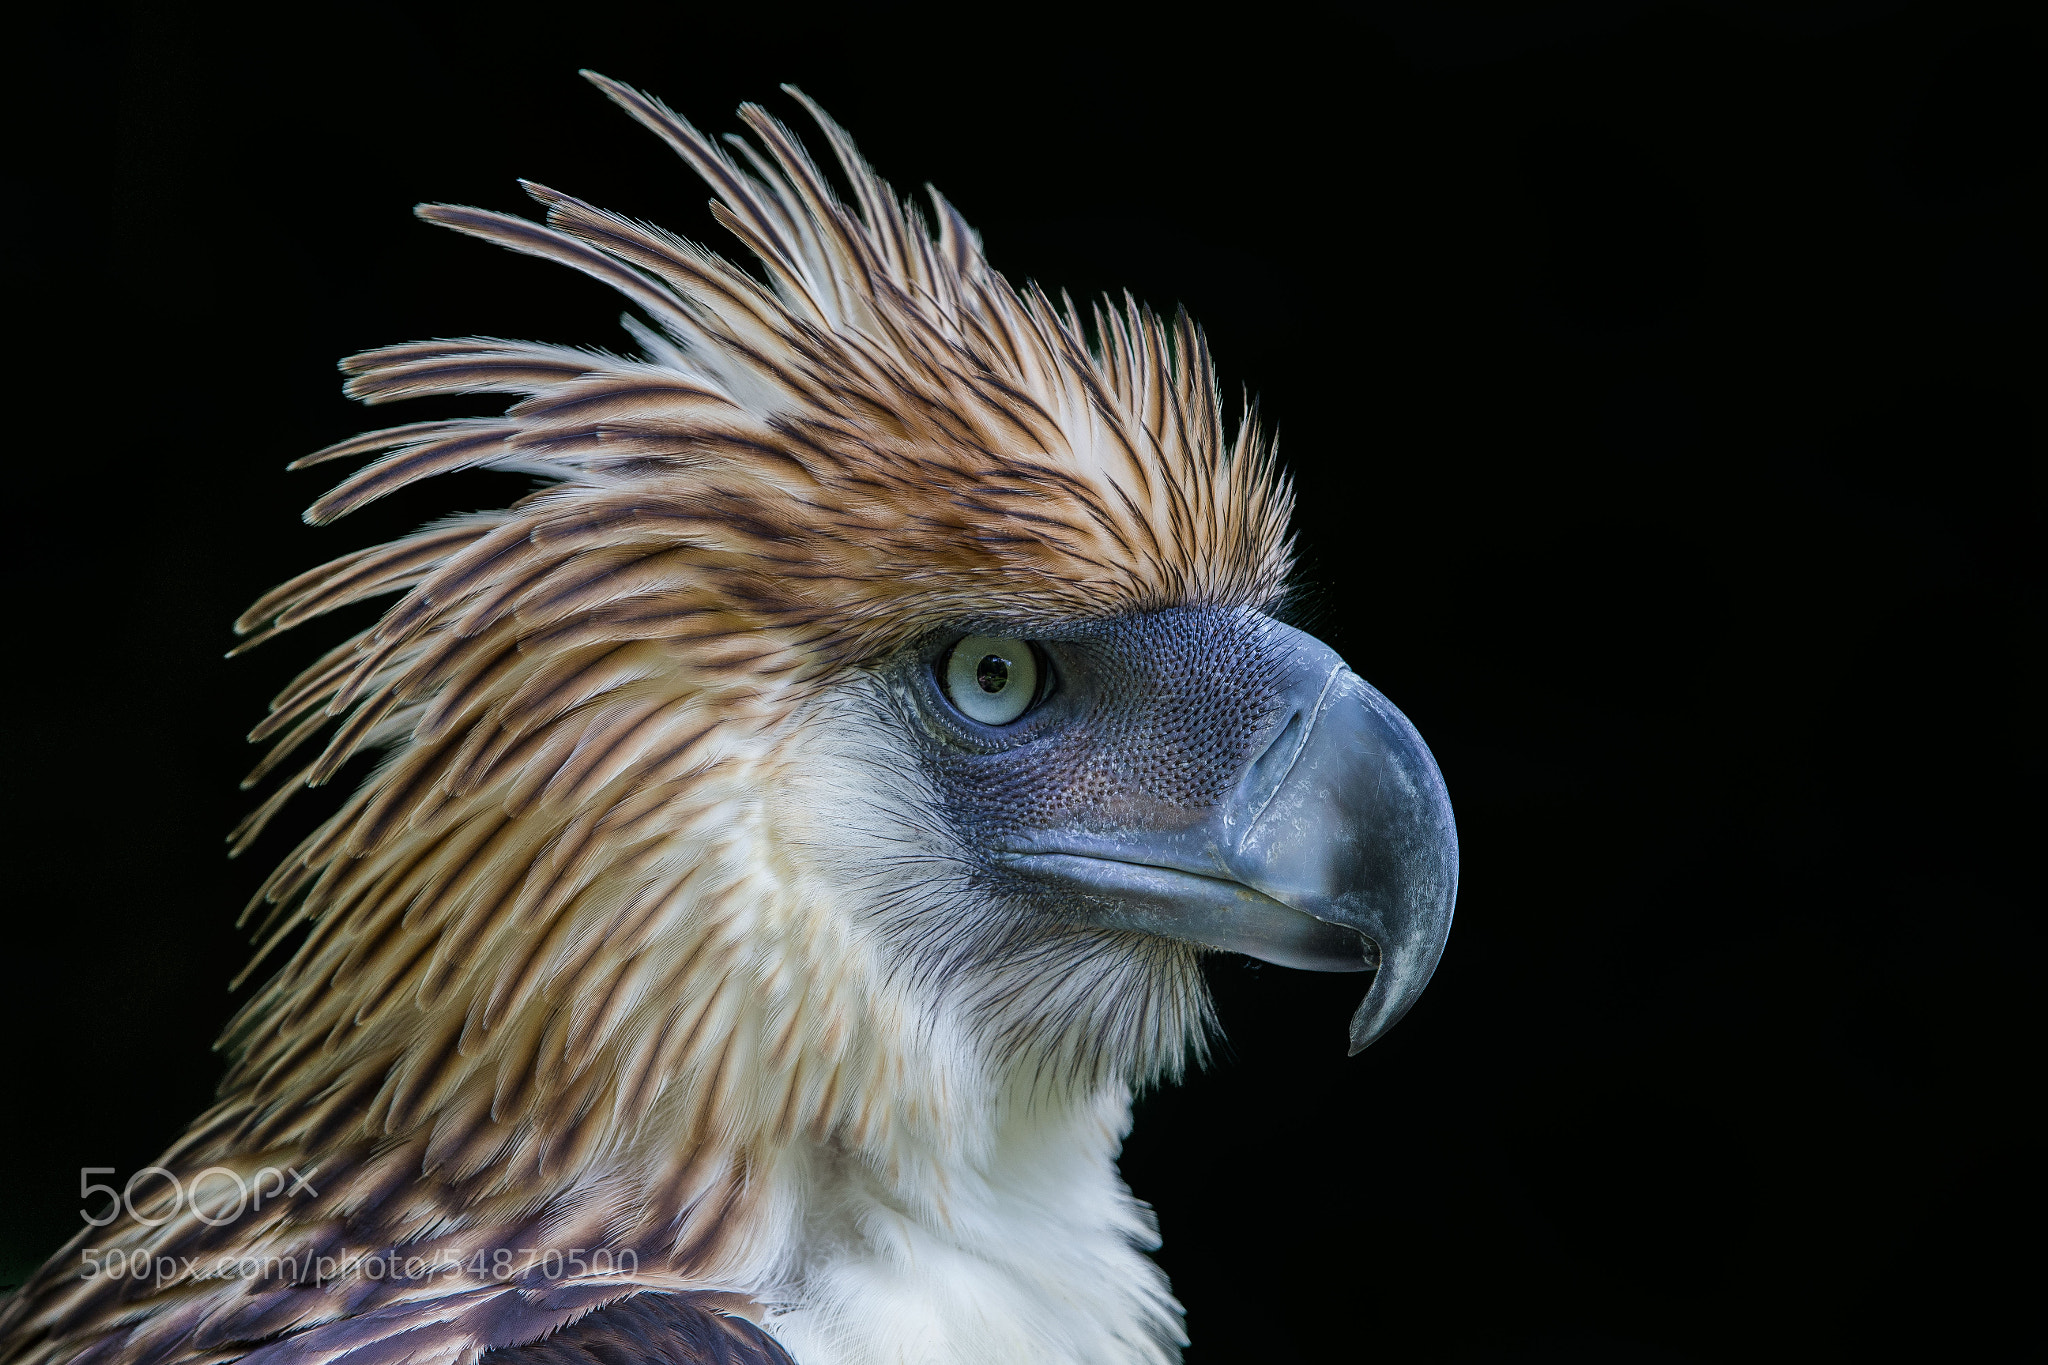 Photograph Philippine Eagle by Jon Chua on 500px Most Epic Picture Ever Taken